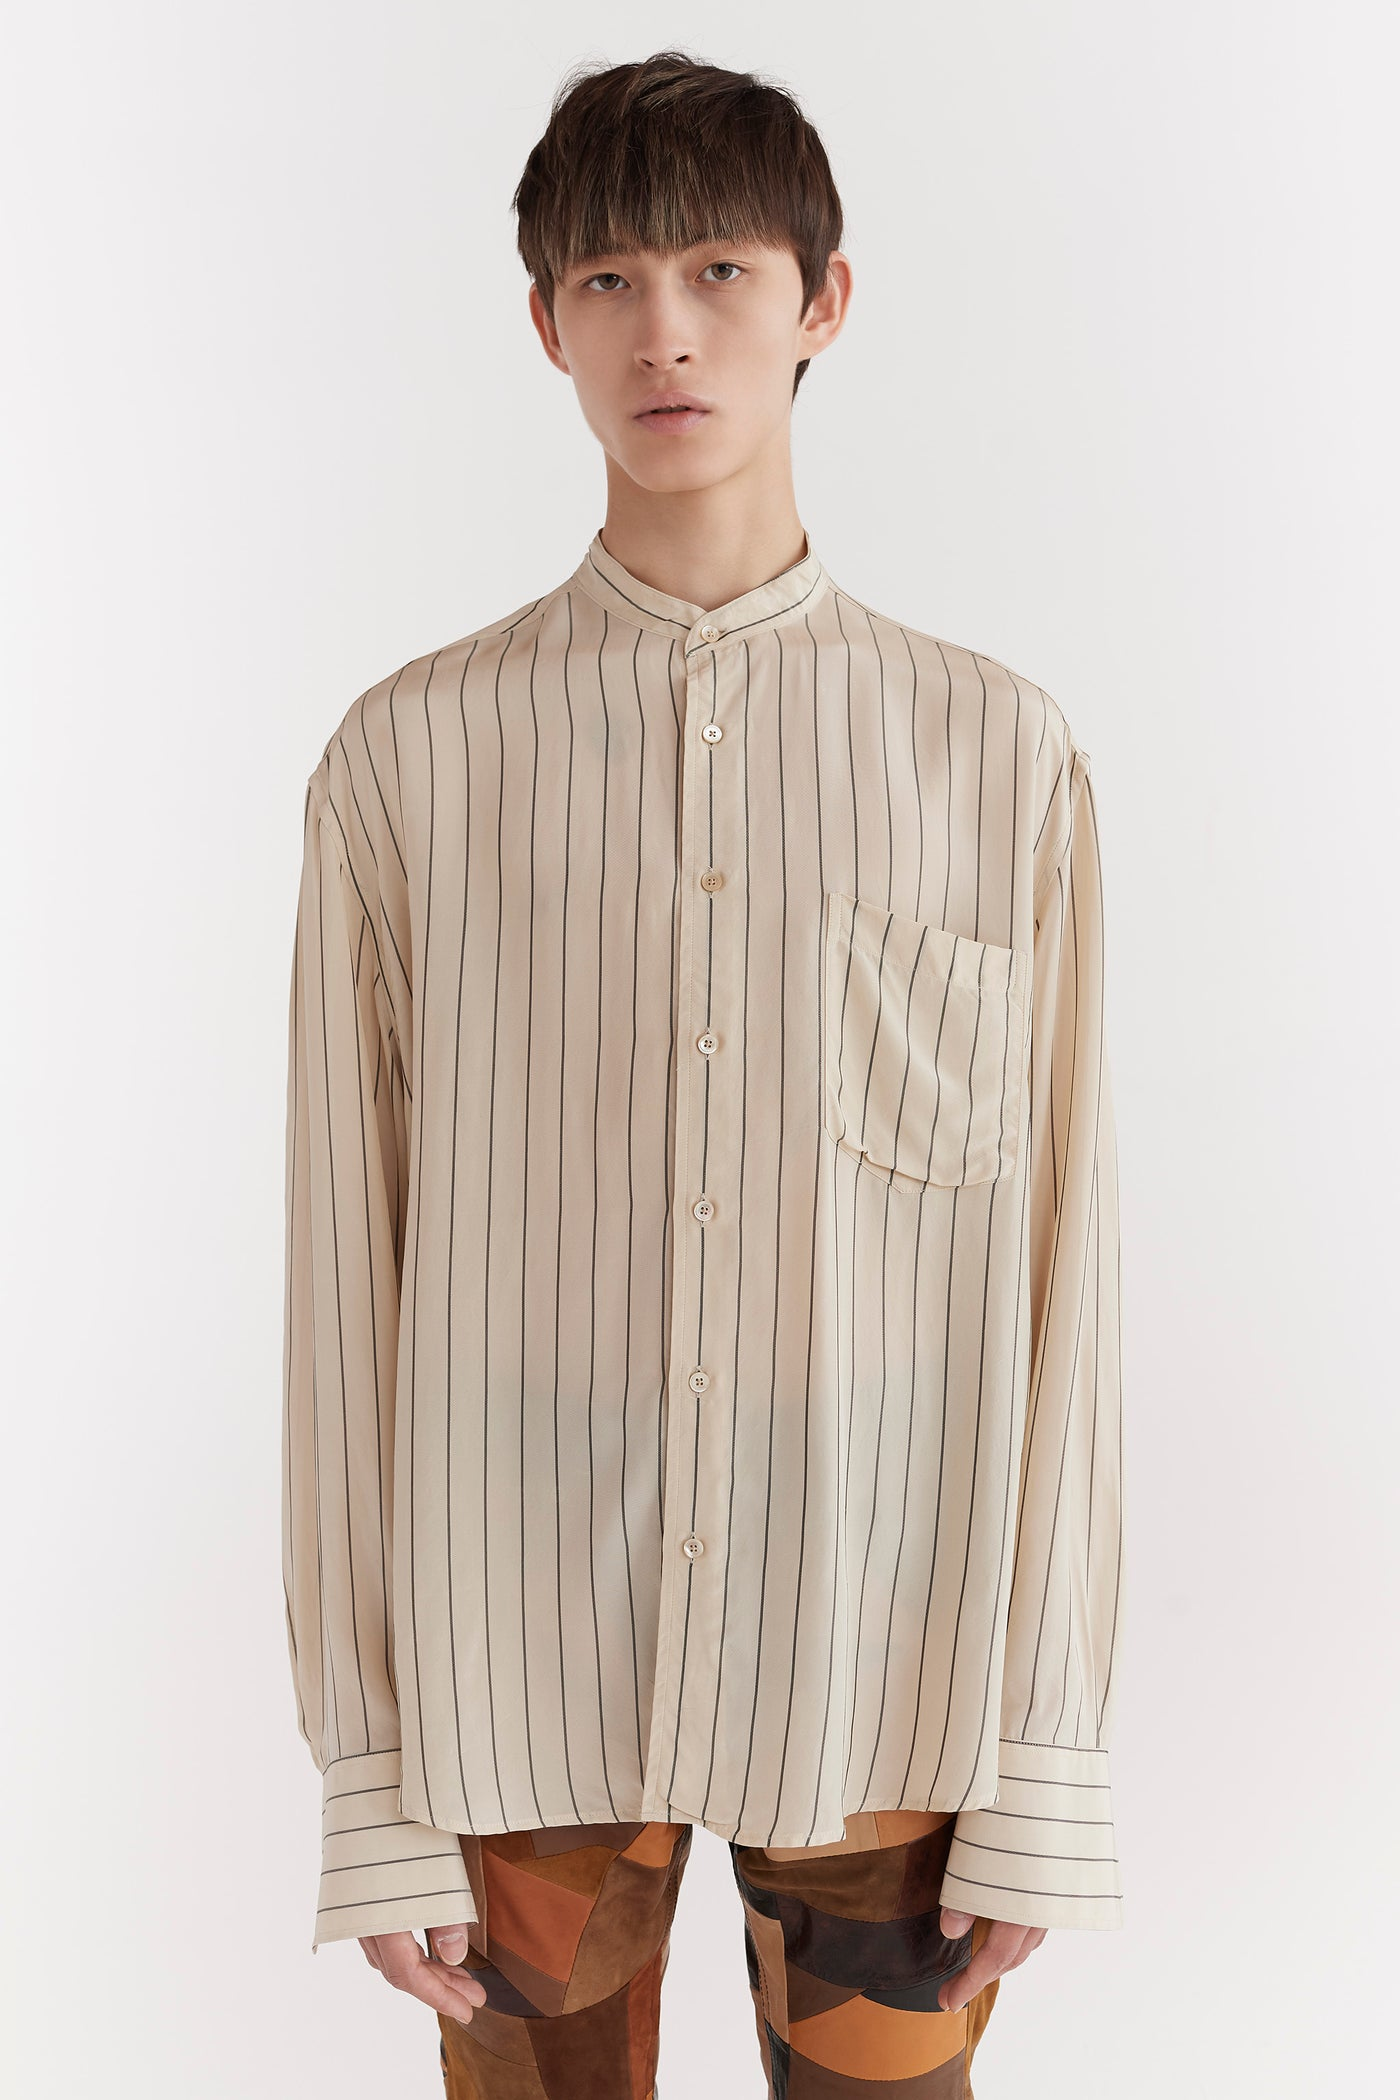 Brice Collarless Shirt Beige Stripe